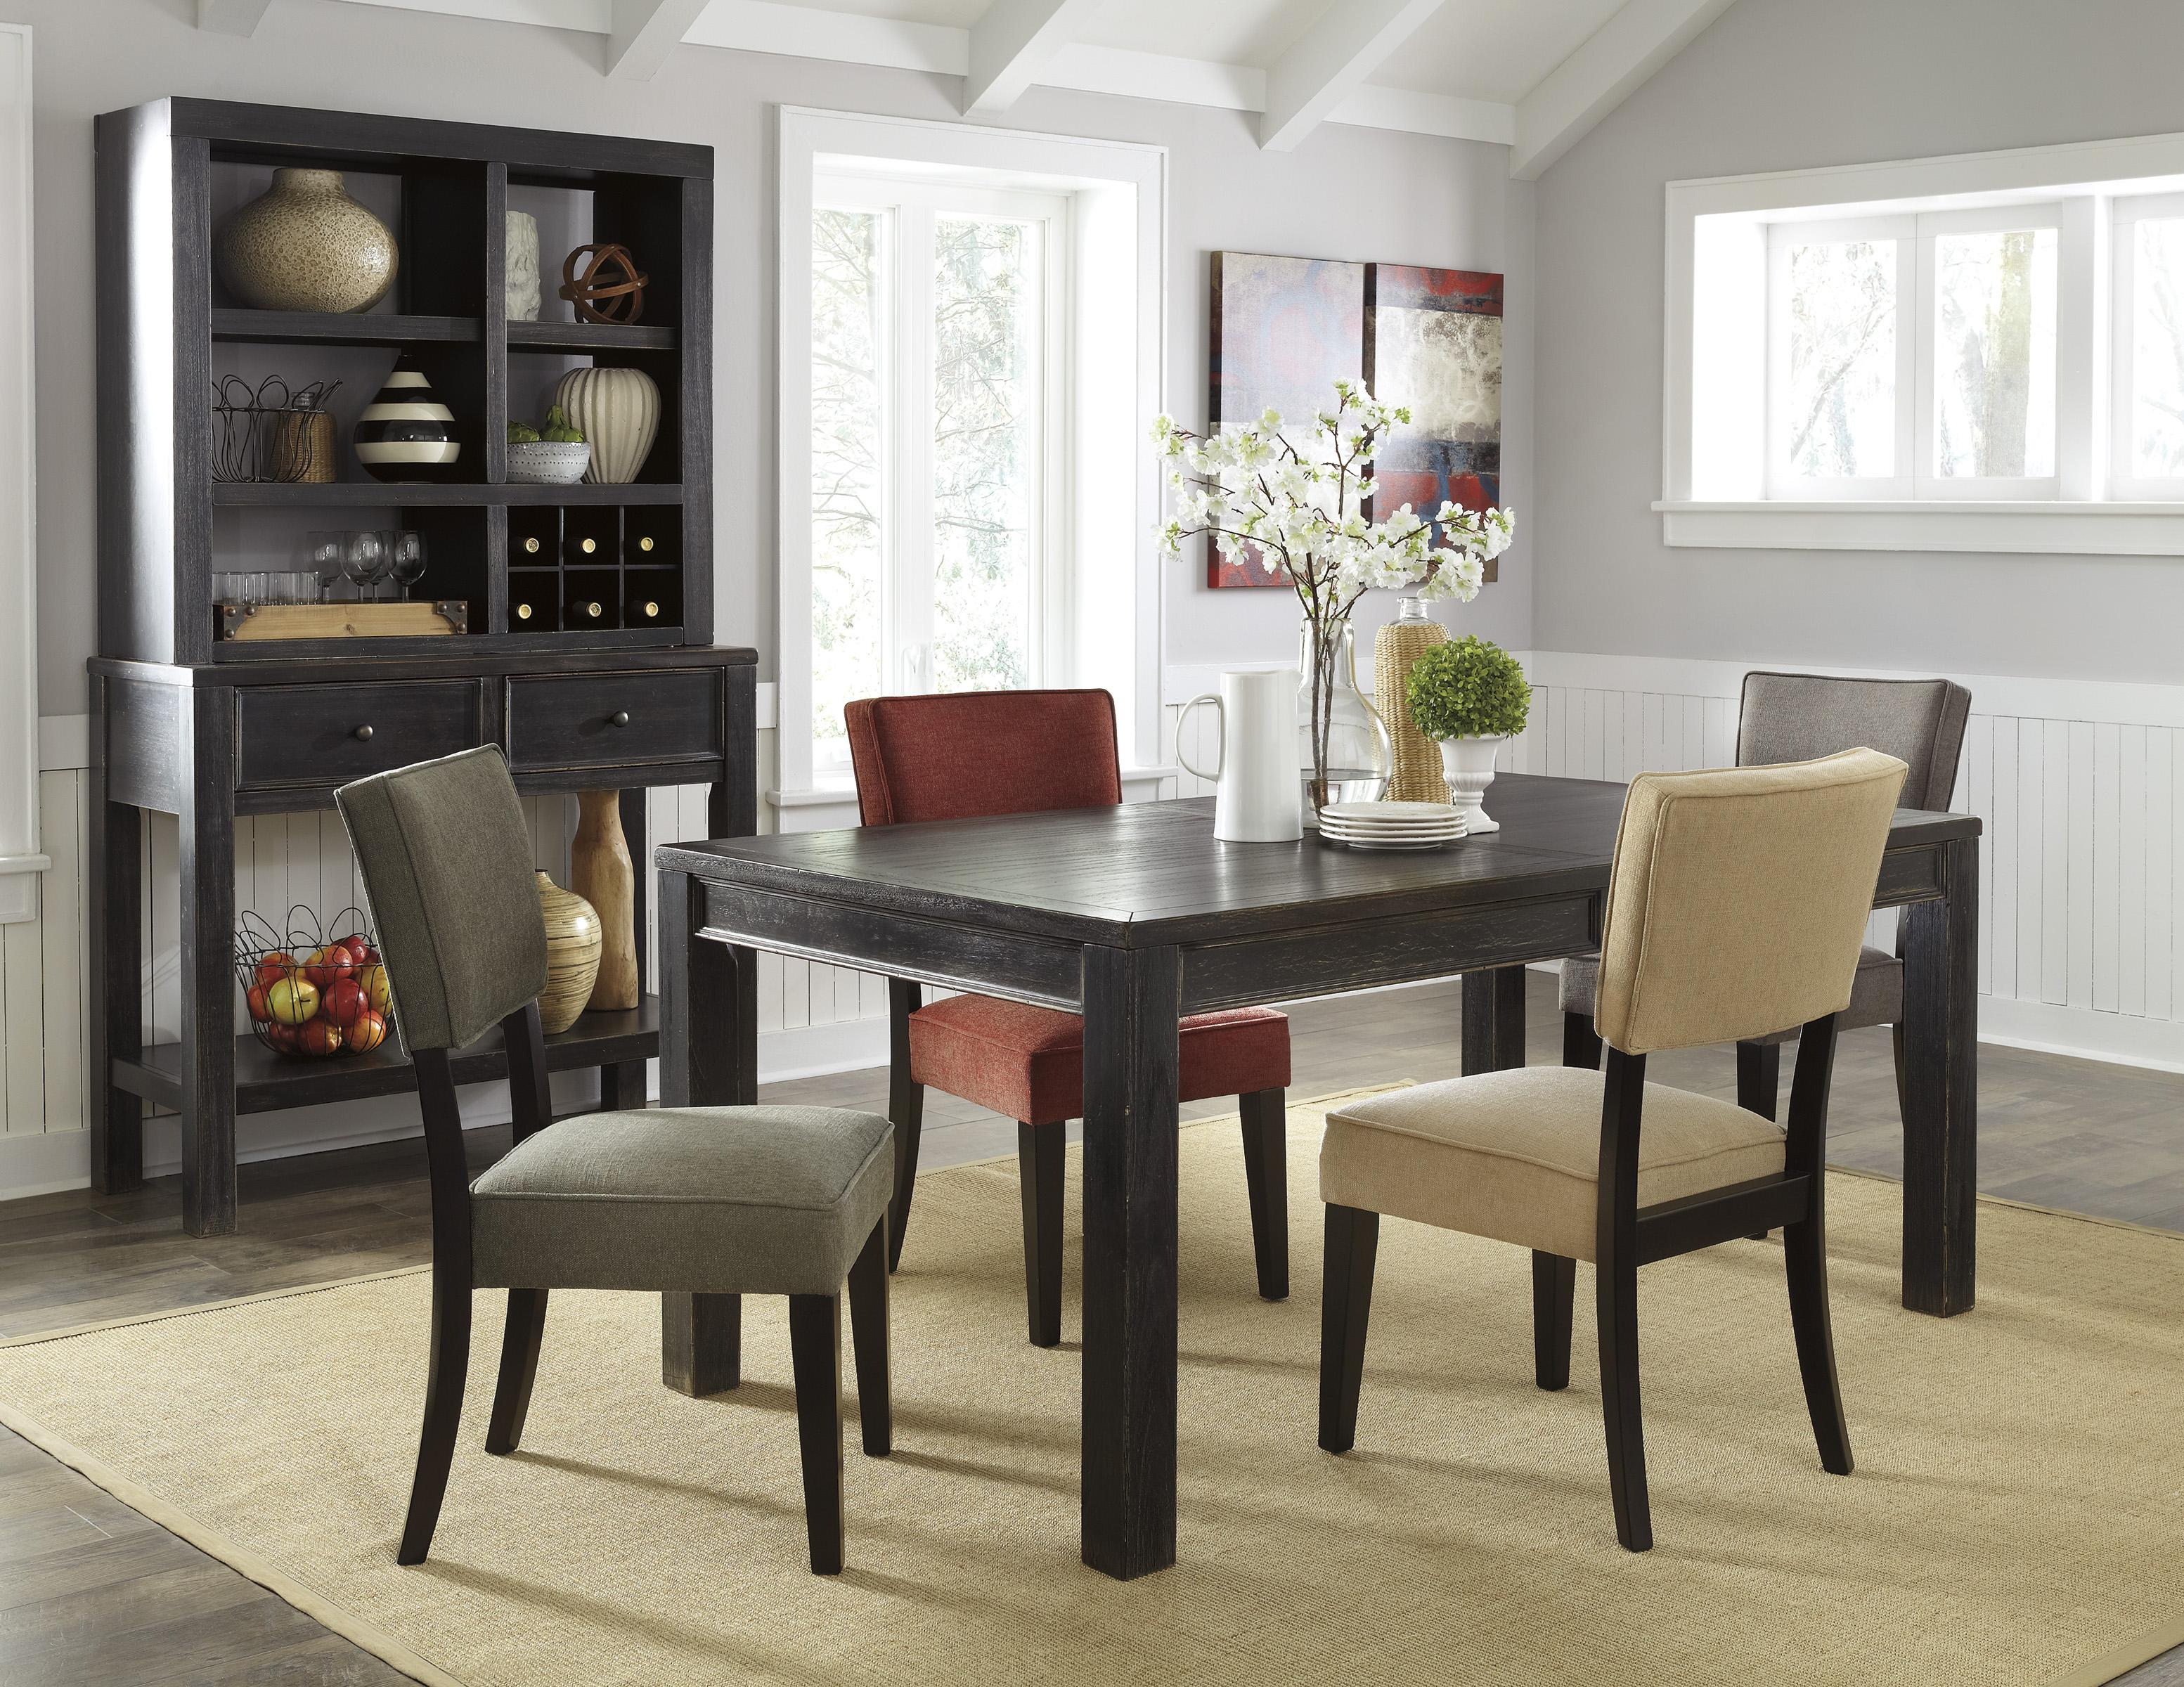 Signature Design by Ashley Gavelston Casual Dining Room Group - Item Number: D532 Dining Room Group 5